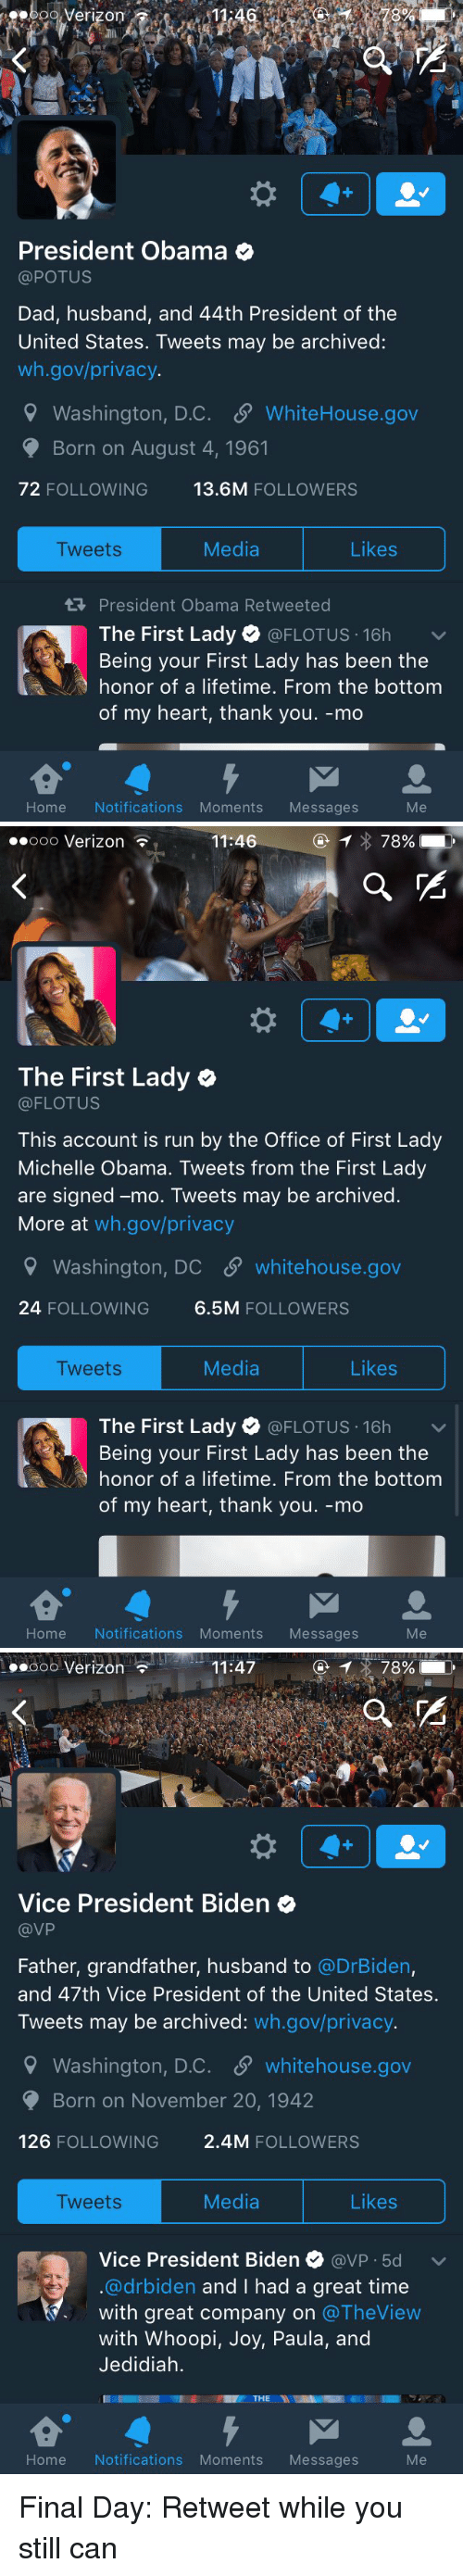 Whoopie: Verizon  President Obama  @POTUS  Dad, husband, and 44th President of the  United States. Tweets may be archived:  wh.gov/privacy.  9 Washington, D.C. SP WhiteHouse.gov  Born on August 4, 1961  72 FOLLOWING  13.6M  FOLLOWERS  Likes  Media  Tweets  President Obama Retweeted  The First Lady  @FLOTUS 16h  v  Being your First Lady has been the  honor of a lifetime. From the bottom  of my heart, thank you. -mo  Home Notifications Moments Messages   Ooo Verizon  11:46  78%  The First Lady  (a FLOTUS  This account is run by the Office of First Lady  Michelle Obama. Tweets from the First Lady  are signed -mo. Tweets may be archived  More at  wh.gov/privacy  Washington, DC SP whitehouse.gov  24 FOLLOWING  6.5M  FOLLOWERS  Media  Likes  Tweets  The First Lady  (a FLOTUS 16h  v  Being your First Lady has been the  honor of a lifetime. From the bottom  of my heart, thank you. -mo  Home Notifications Moments  Messages   11:47  78%  Ooo Verizon  Vice President Biden  VP  Father, grandfather, husband to  @DrBiden,  and 47th Vice President of the United States.  Tweets may be archived  wh.gov/privacy.  9 Washington, D.C. S whitehouse.gov  Born on November 20, 1942  126  FOLLOWING  2.4M FOLLOWERS  Media  Likes  Tweets  Vice President Biden  avP 5d v  @drbiden and I had a great time  with great company on  The View  with Whoopi  Joy, Paula, and  Jedidiah.  THE  NI  Home Notifications Moments Messages Final Day: Retweet while you still can